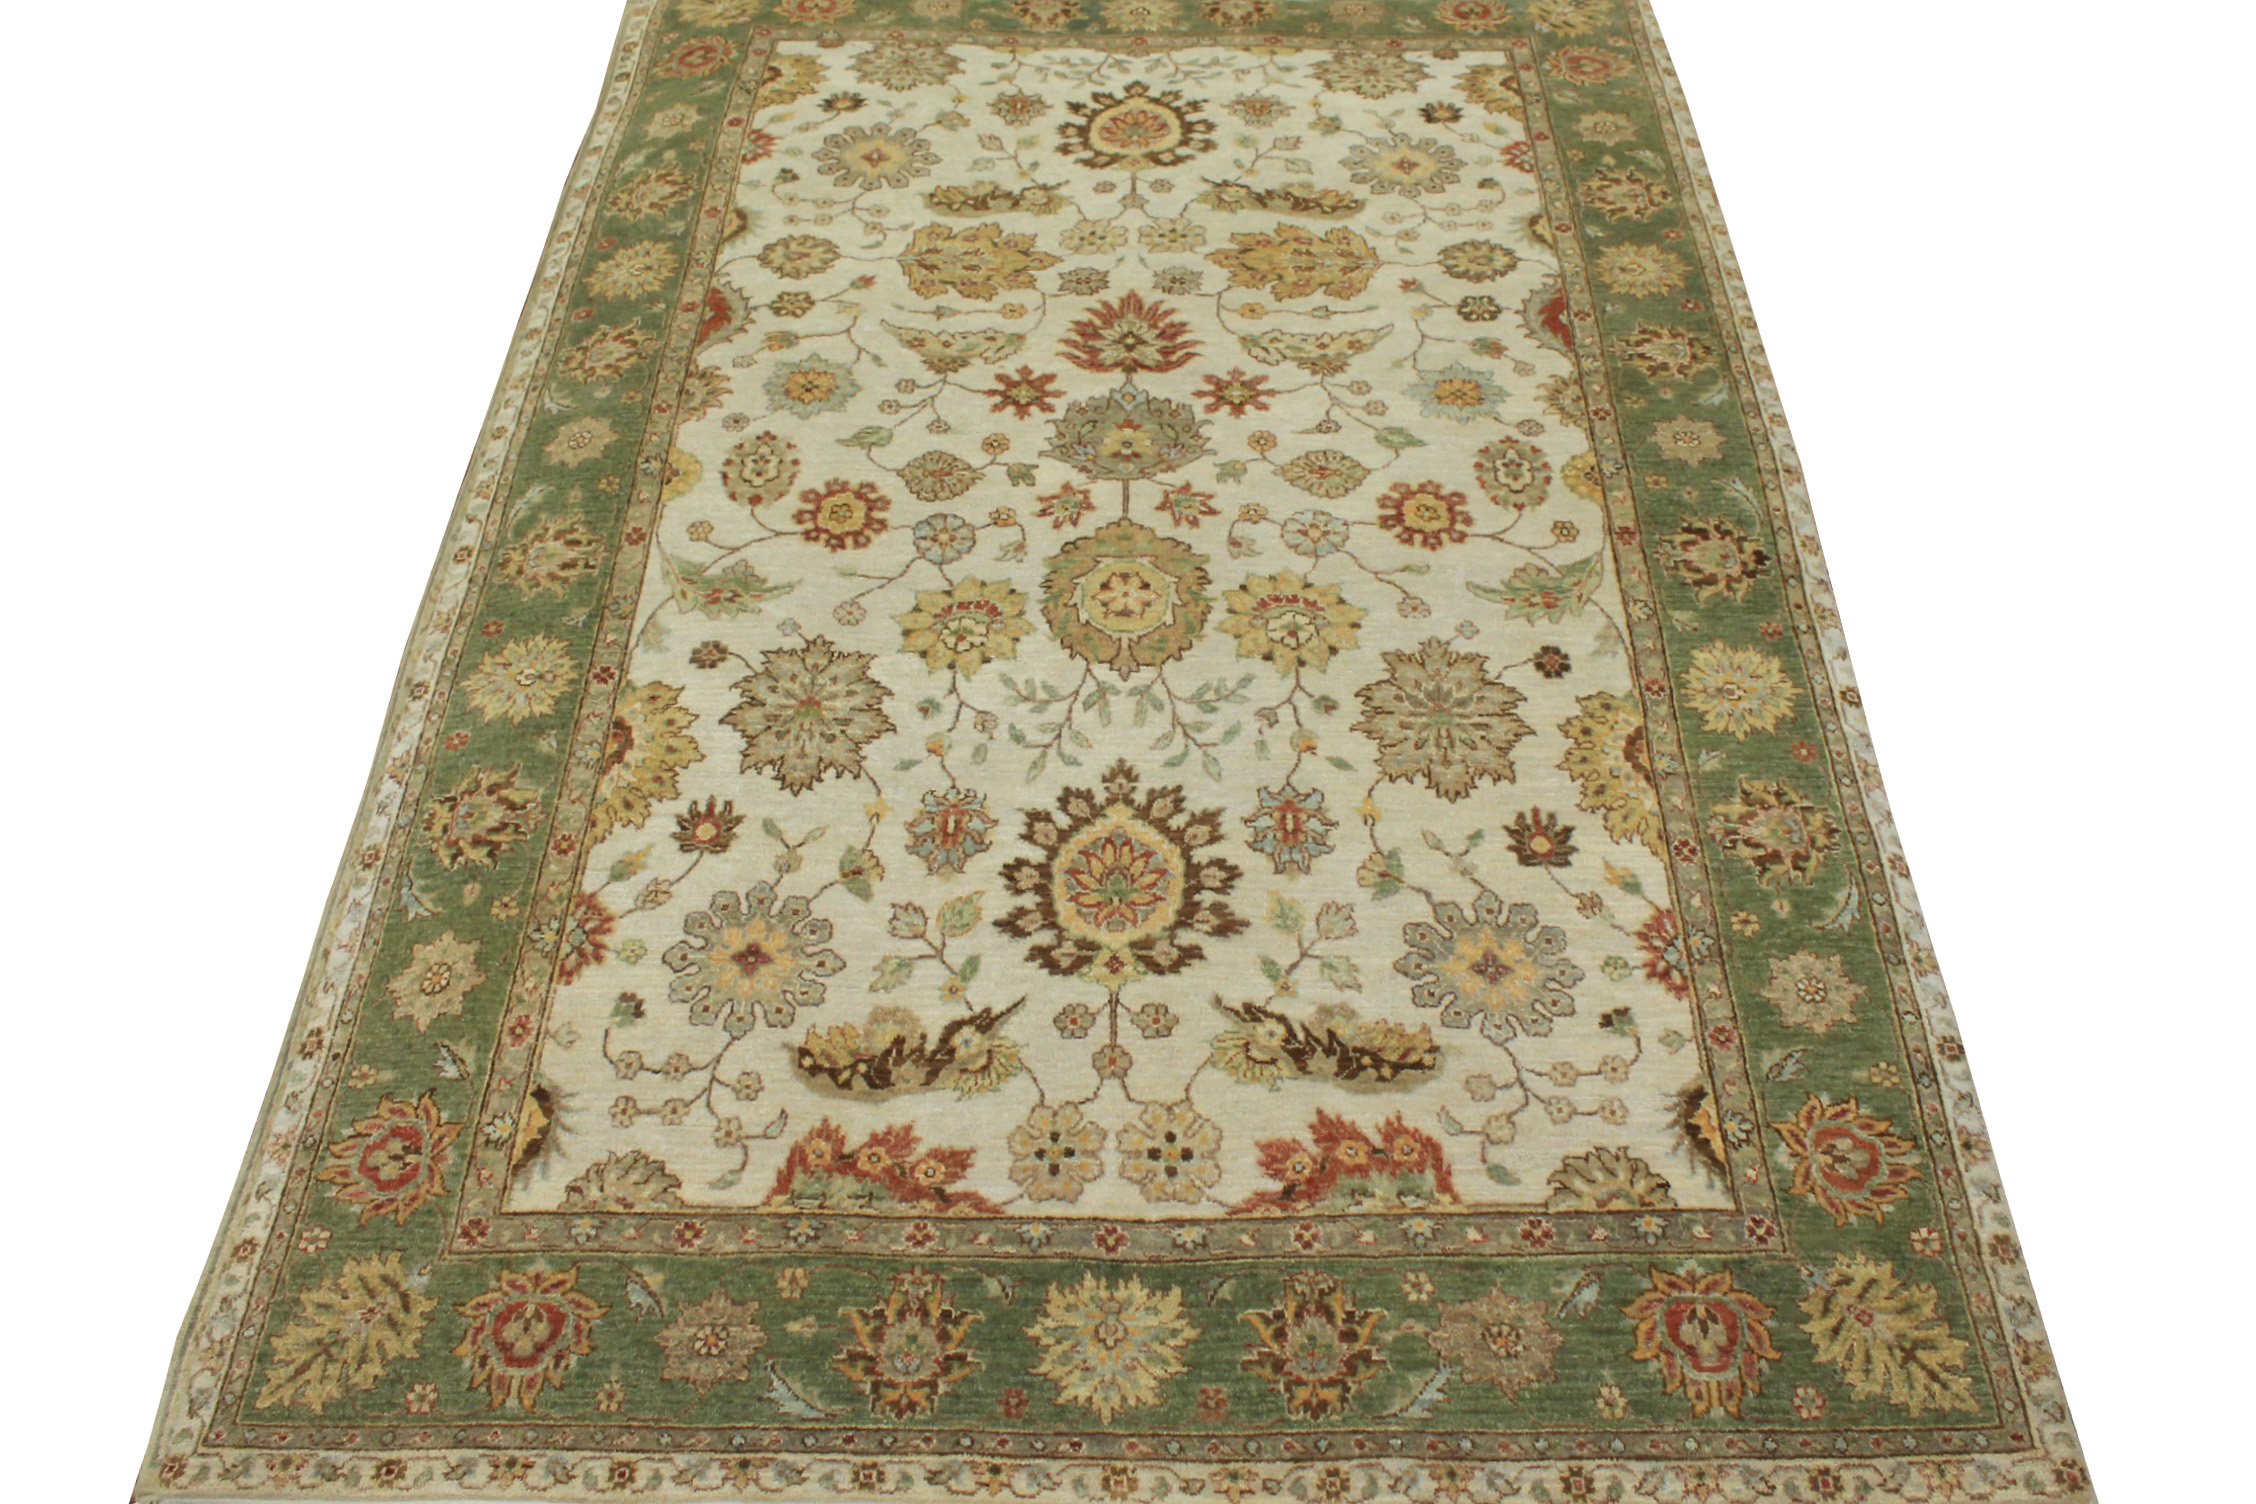 6x9 Traditional Hand Knotted Wool Area Rug - MR19675